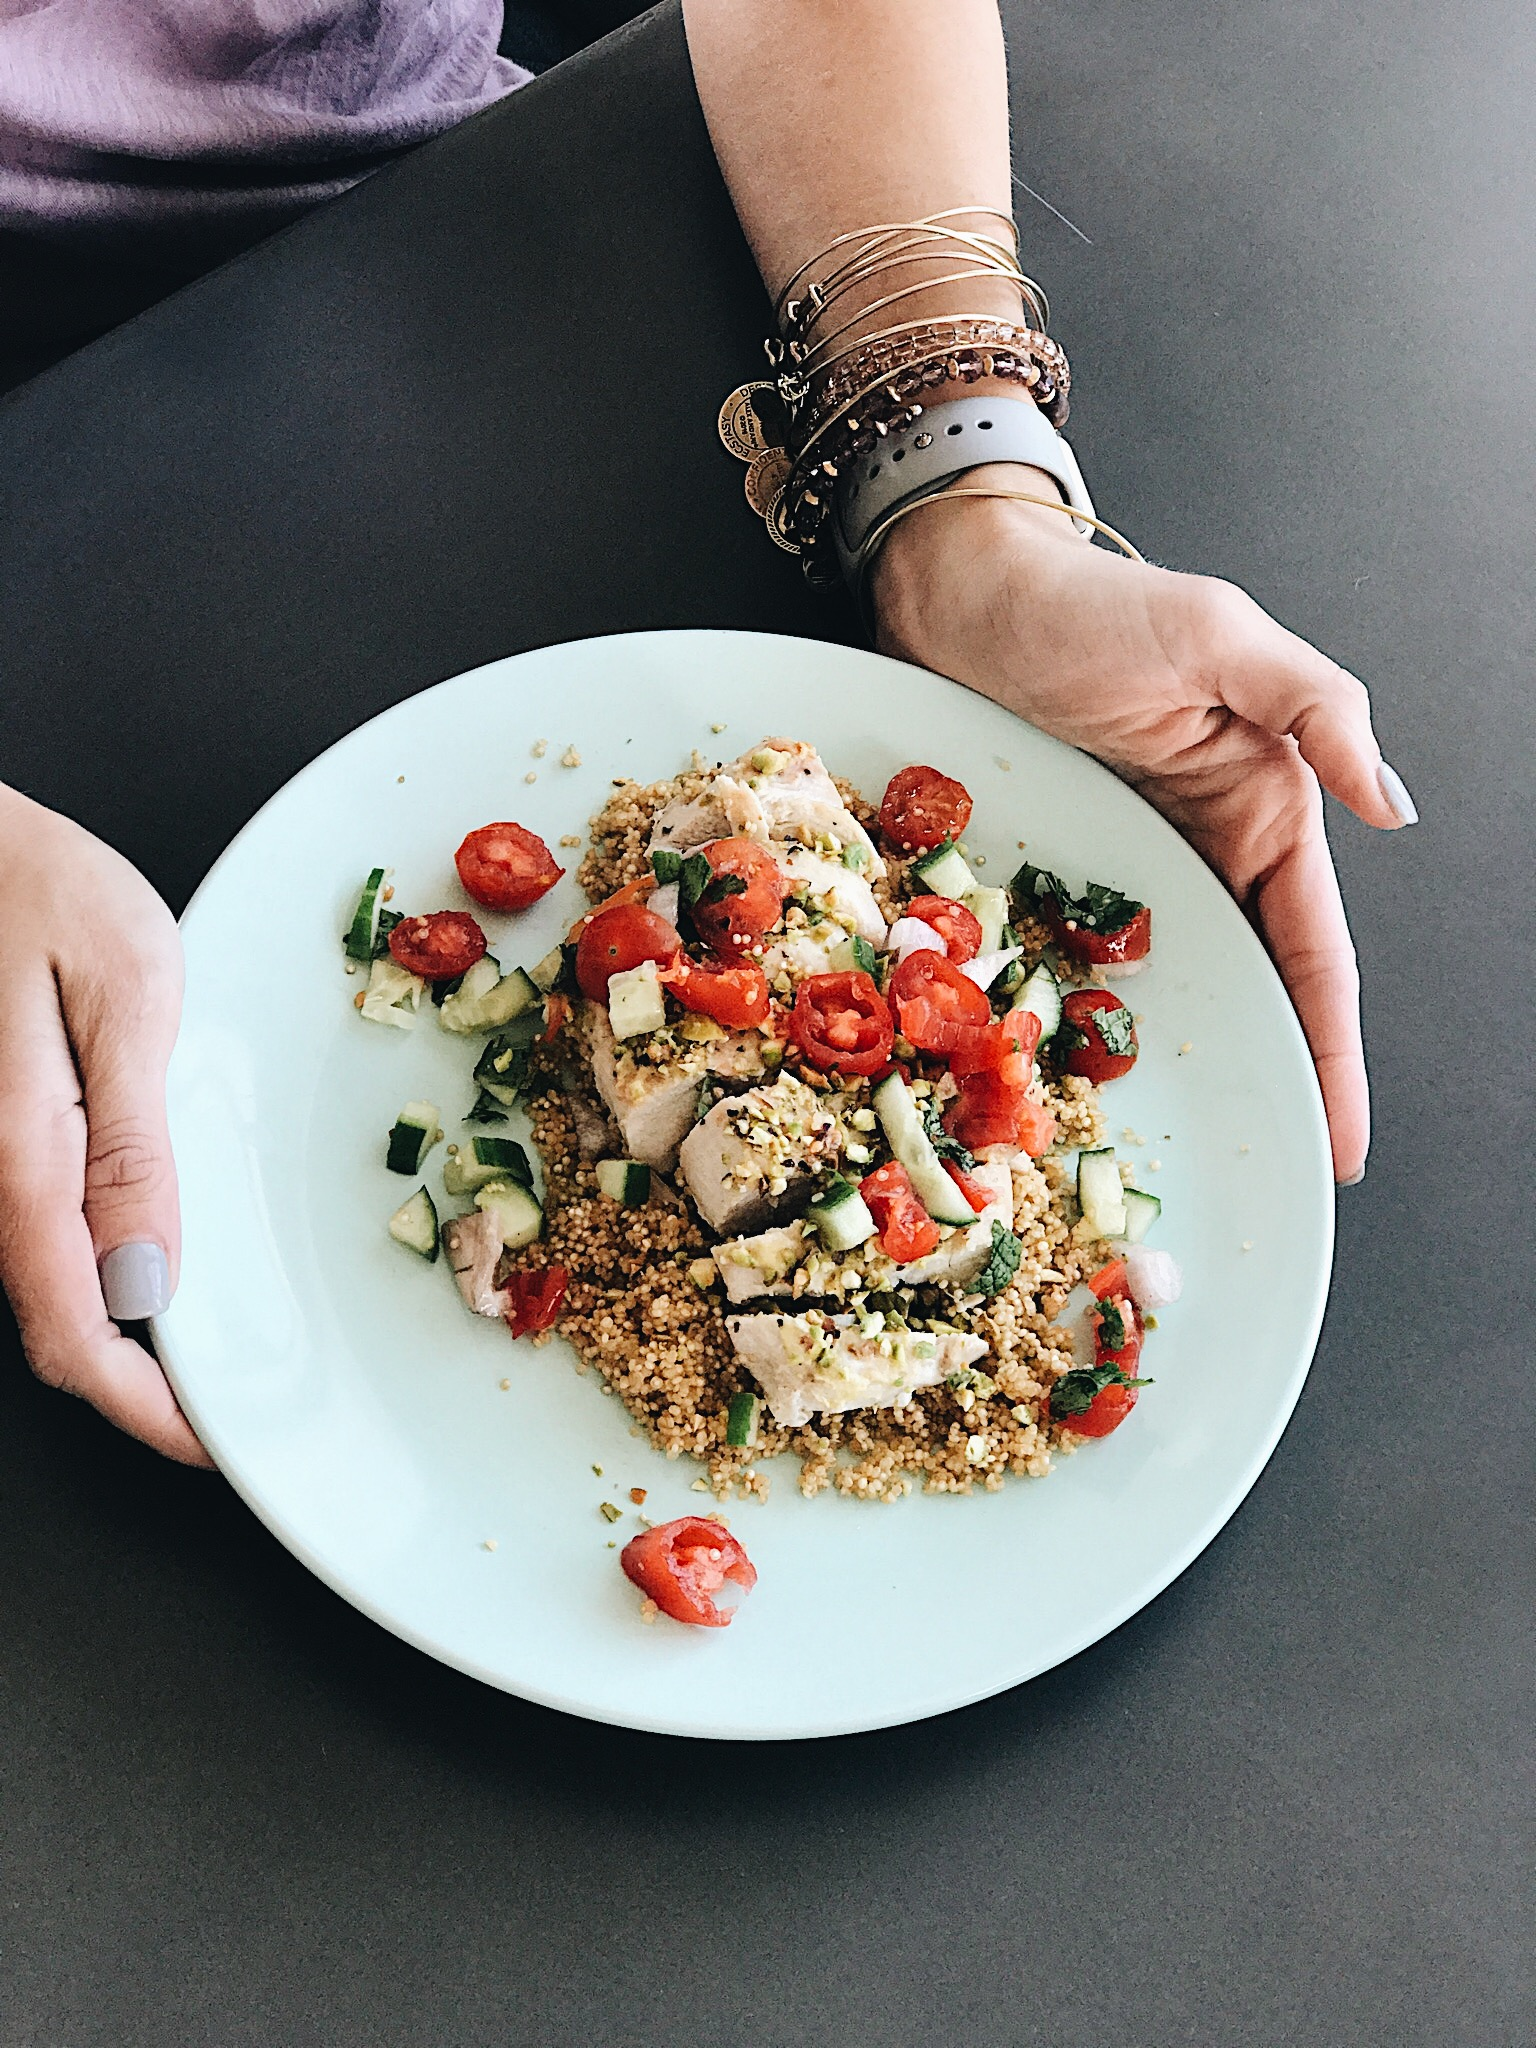 HelloFresh Review: We heart you HelloFresh by social media influencer Ginger Parrish